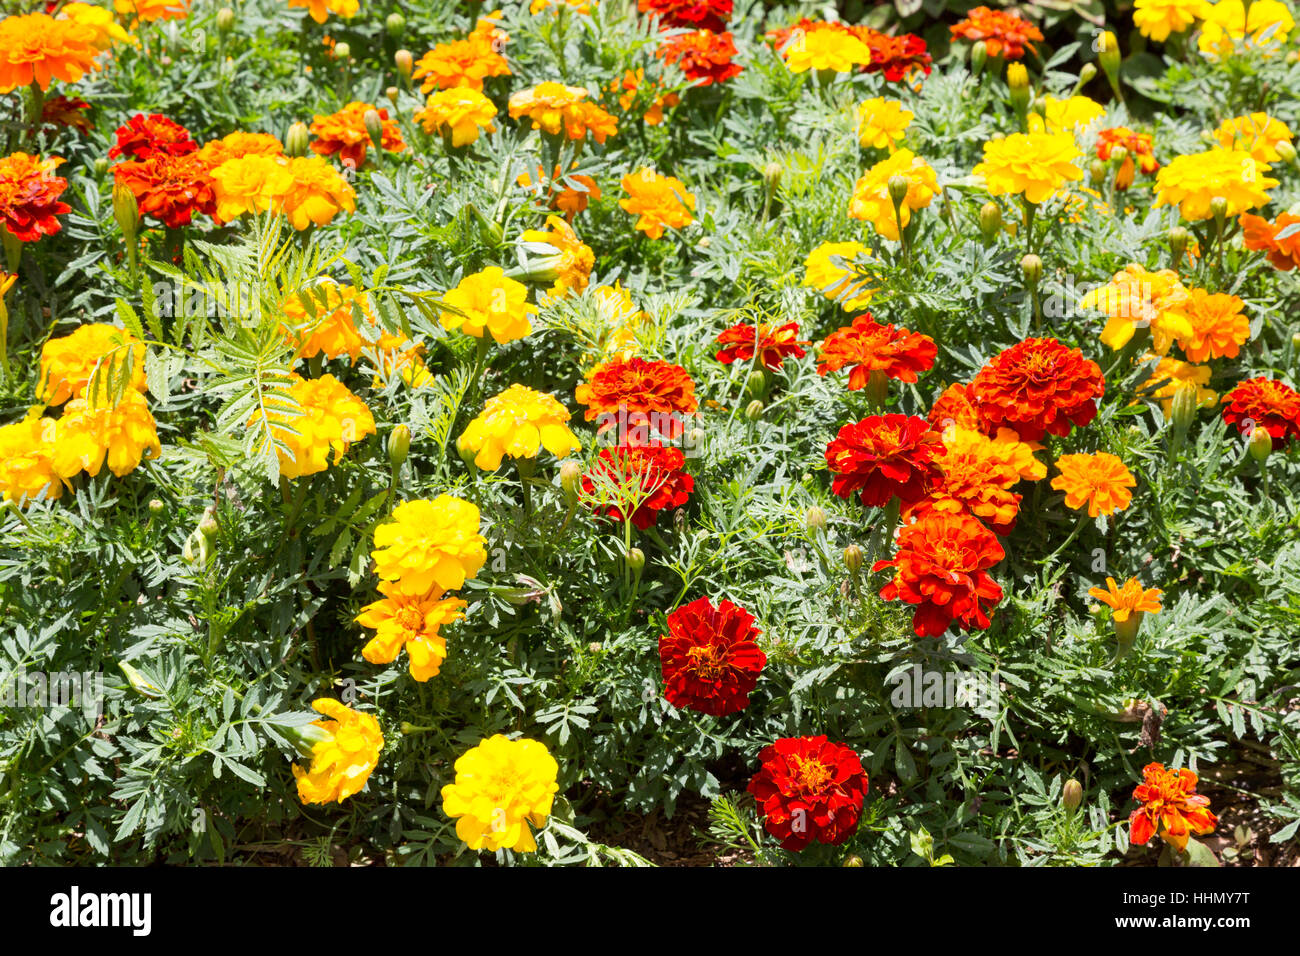 French marigold (Tagetes patula), full of flowers in garden, Campos do Jordao, State of Sao Paulo, Brazil Stock Photo